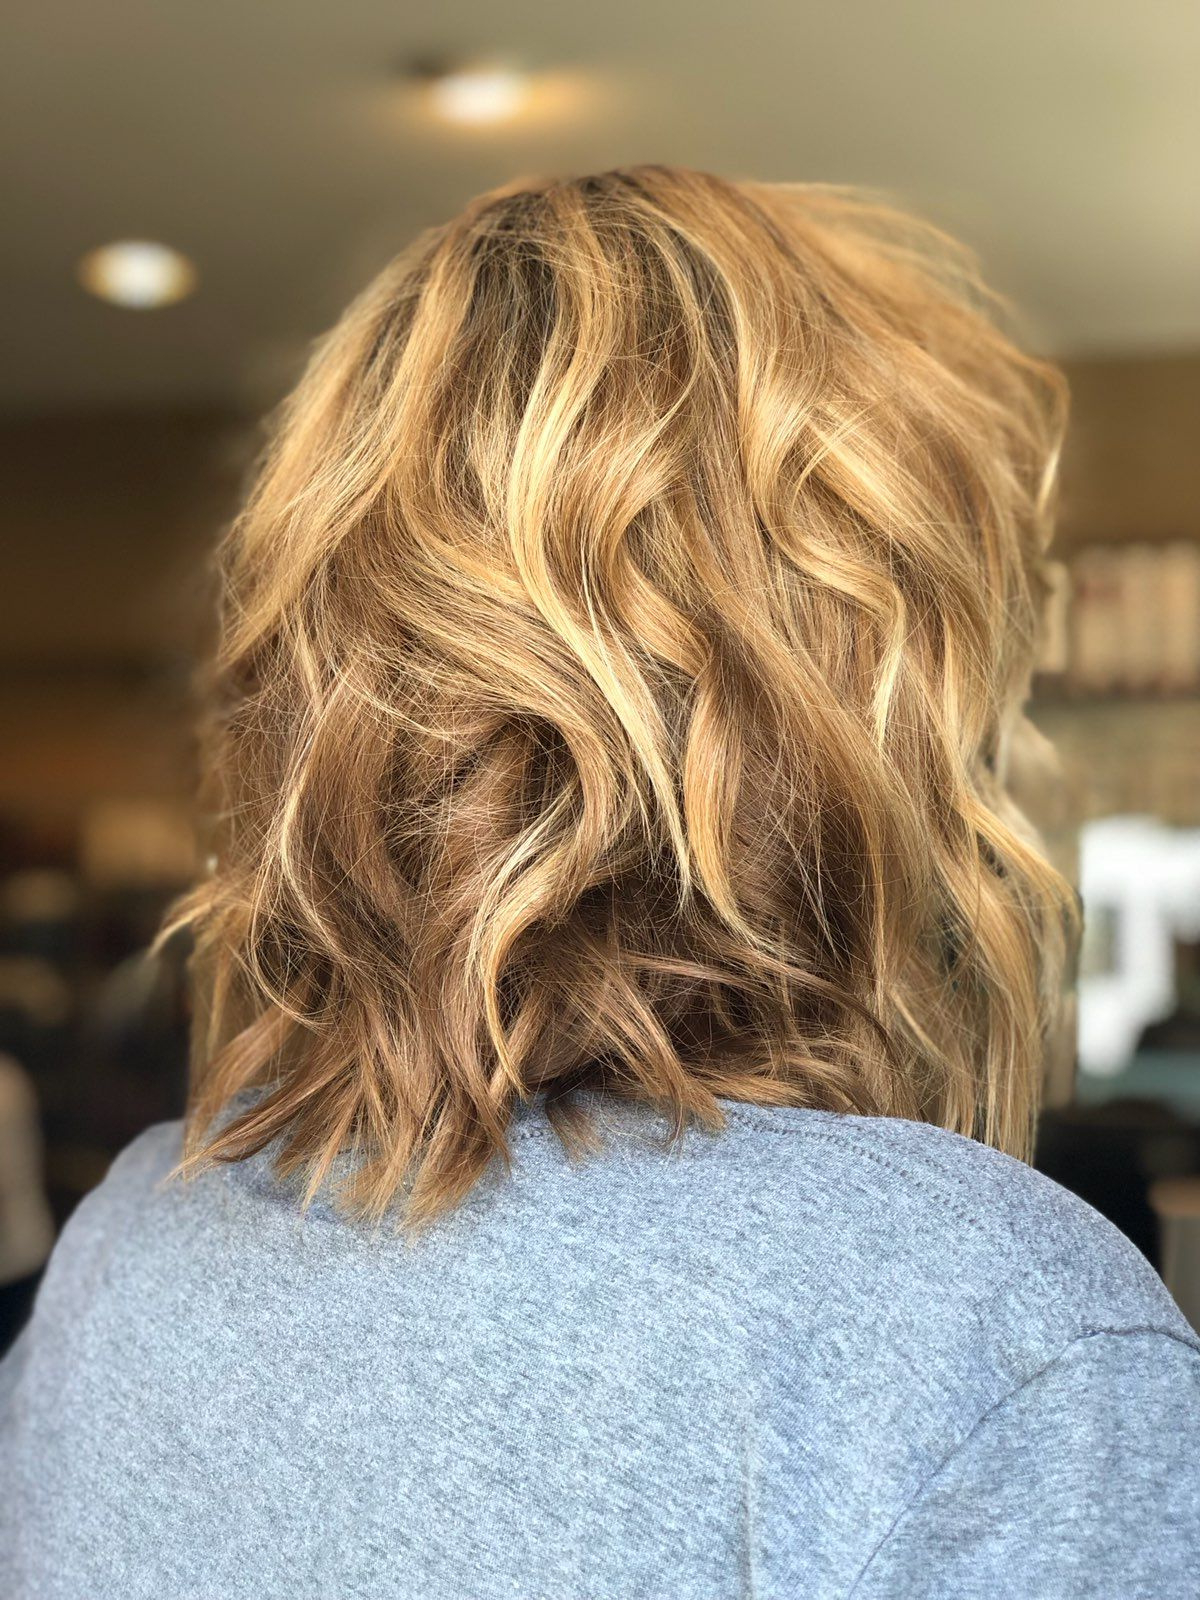 Fashion : Beach Wave Hairstyle Superb Texturized Lob Haircut Pertaining To Latest Wavy Lob Hairstyles With Face Framing Highlights (View 8 of 20)